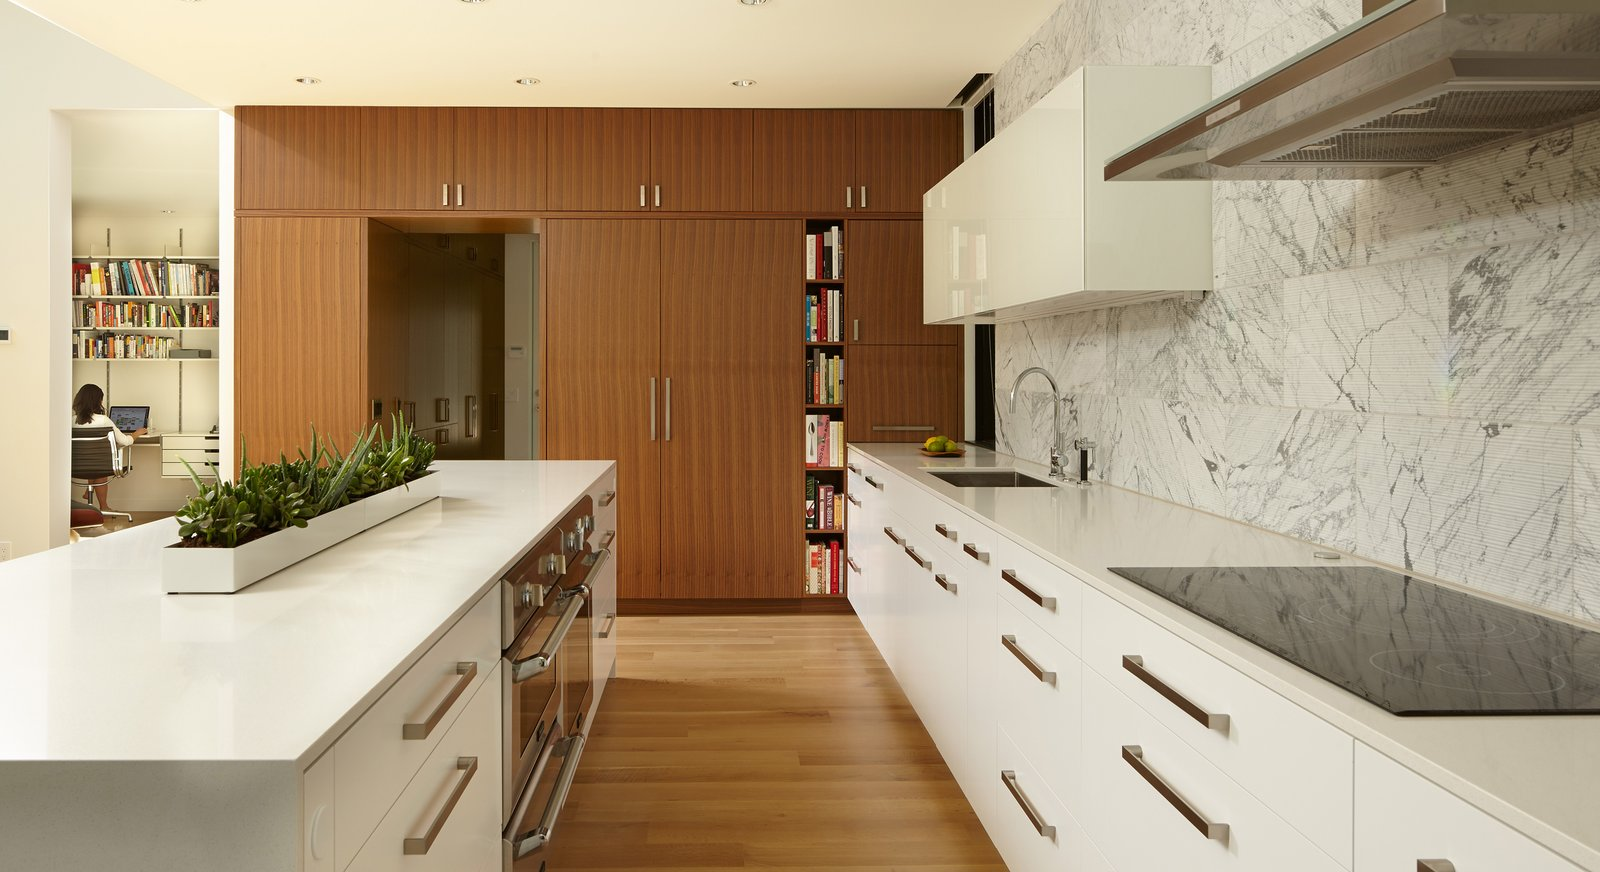 Kitchen, White, Light Hardwood, Engineered Quartz, Wood, Ceiling, Stone Tile, Range Hood, Wall Oven, Refrigerator, Cooktops, and Drop In  Best Kitchen Cooktops Drop In Wall Oven Ceiling Engineered Quartz Stone Tile Photos from Sheridan Residence